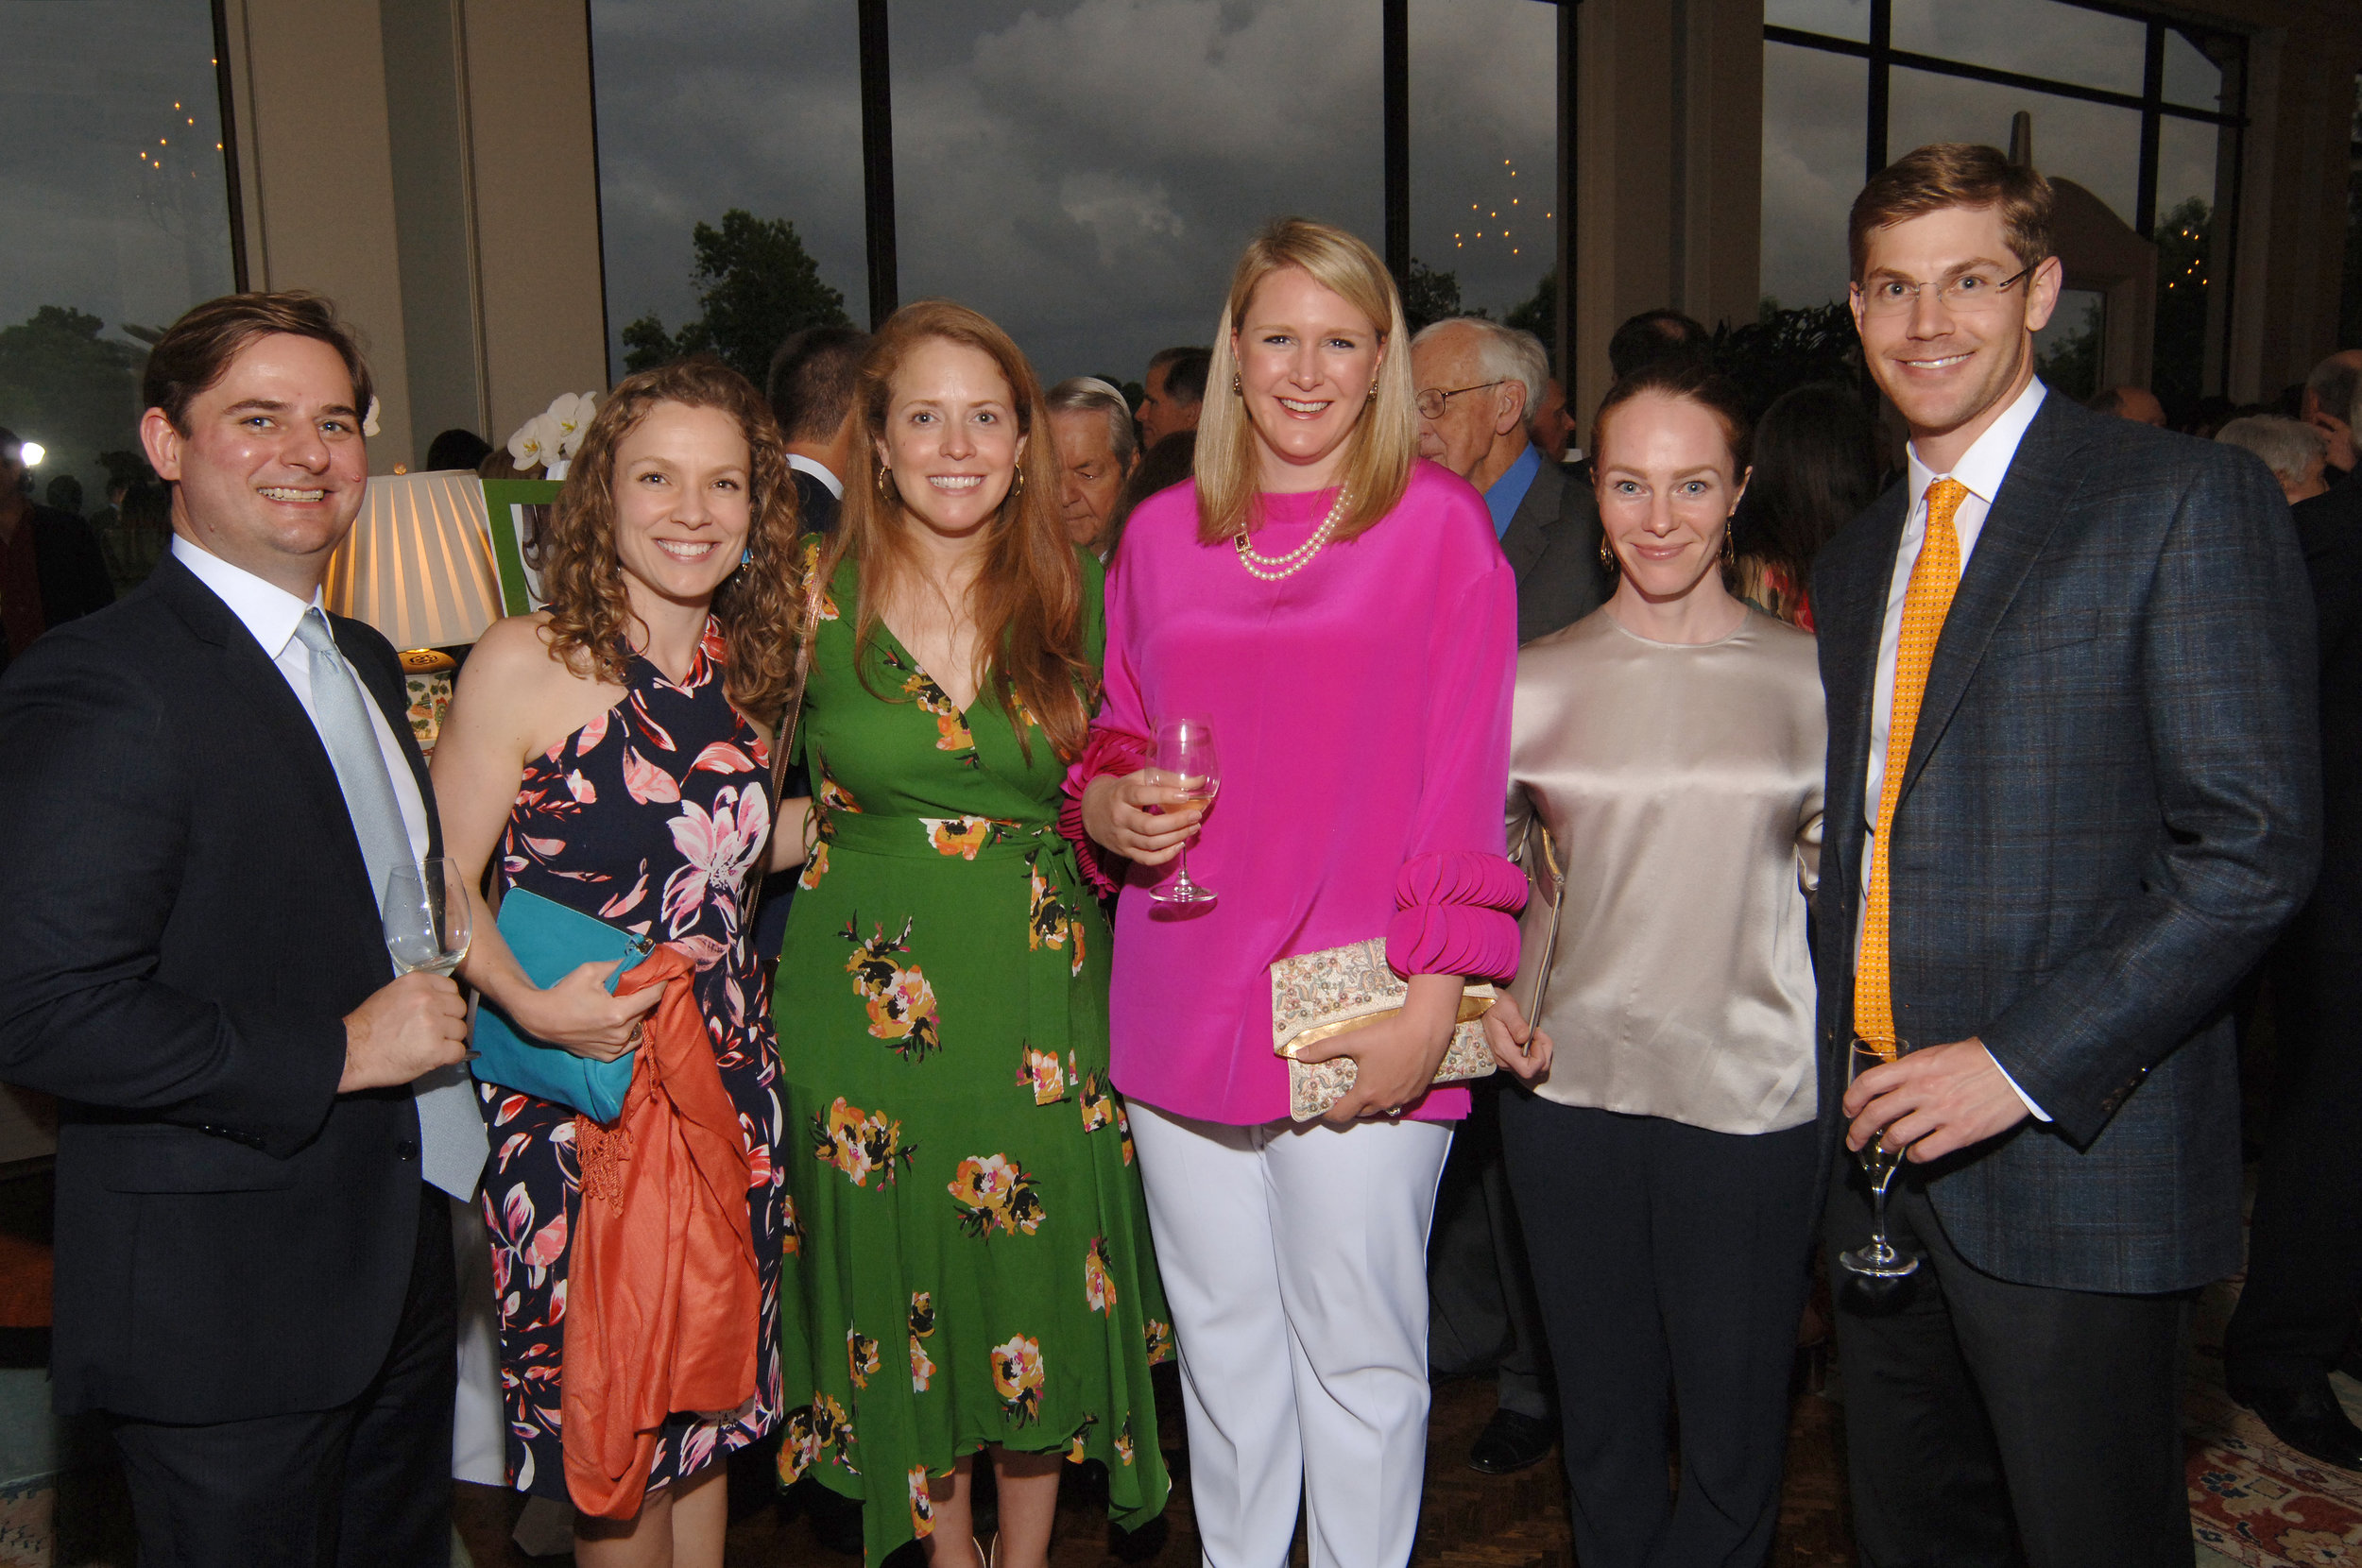 KPC Gala_Andrew Stakelum, Liz Ziccardi, Katy Bacon-Madigan, Mimi Brown, Stephanie Harcrow, Louis Mertz_Tom DuBrock photo.JPG